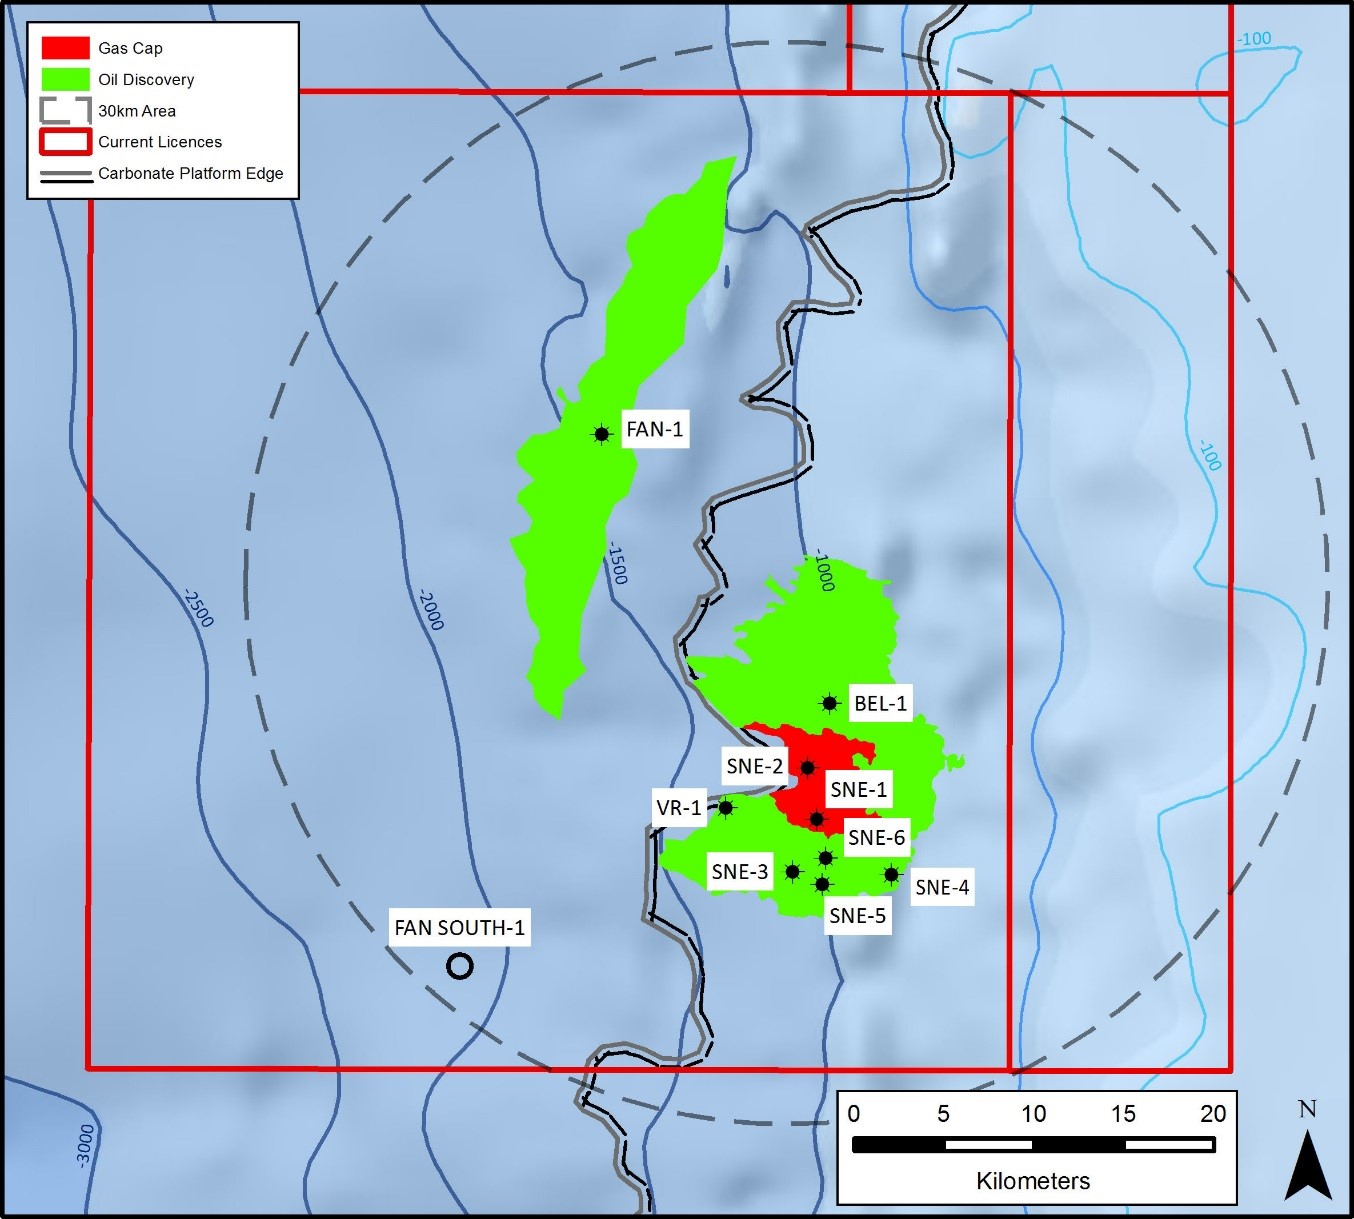 Cairn's 9th Senegal Well Flows Oil